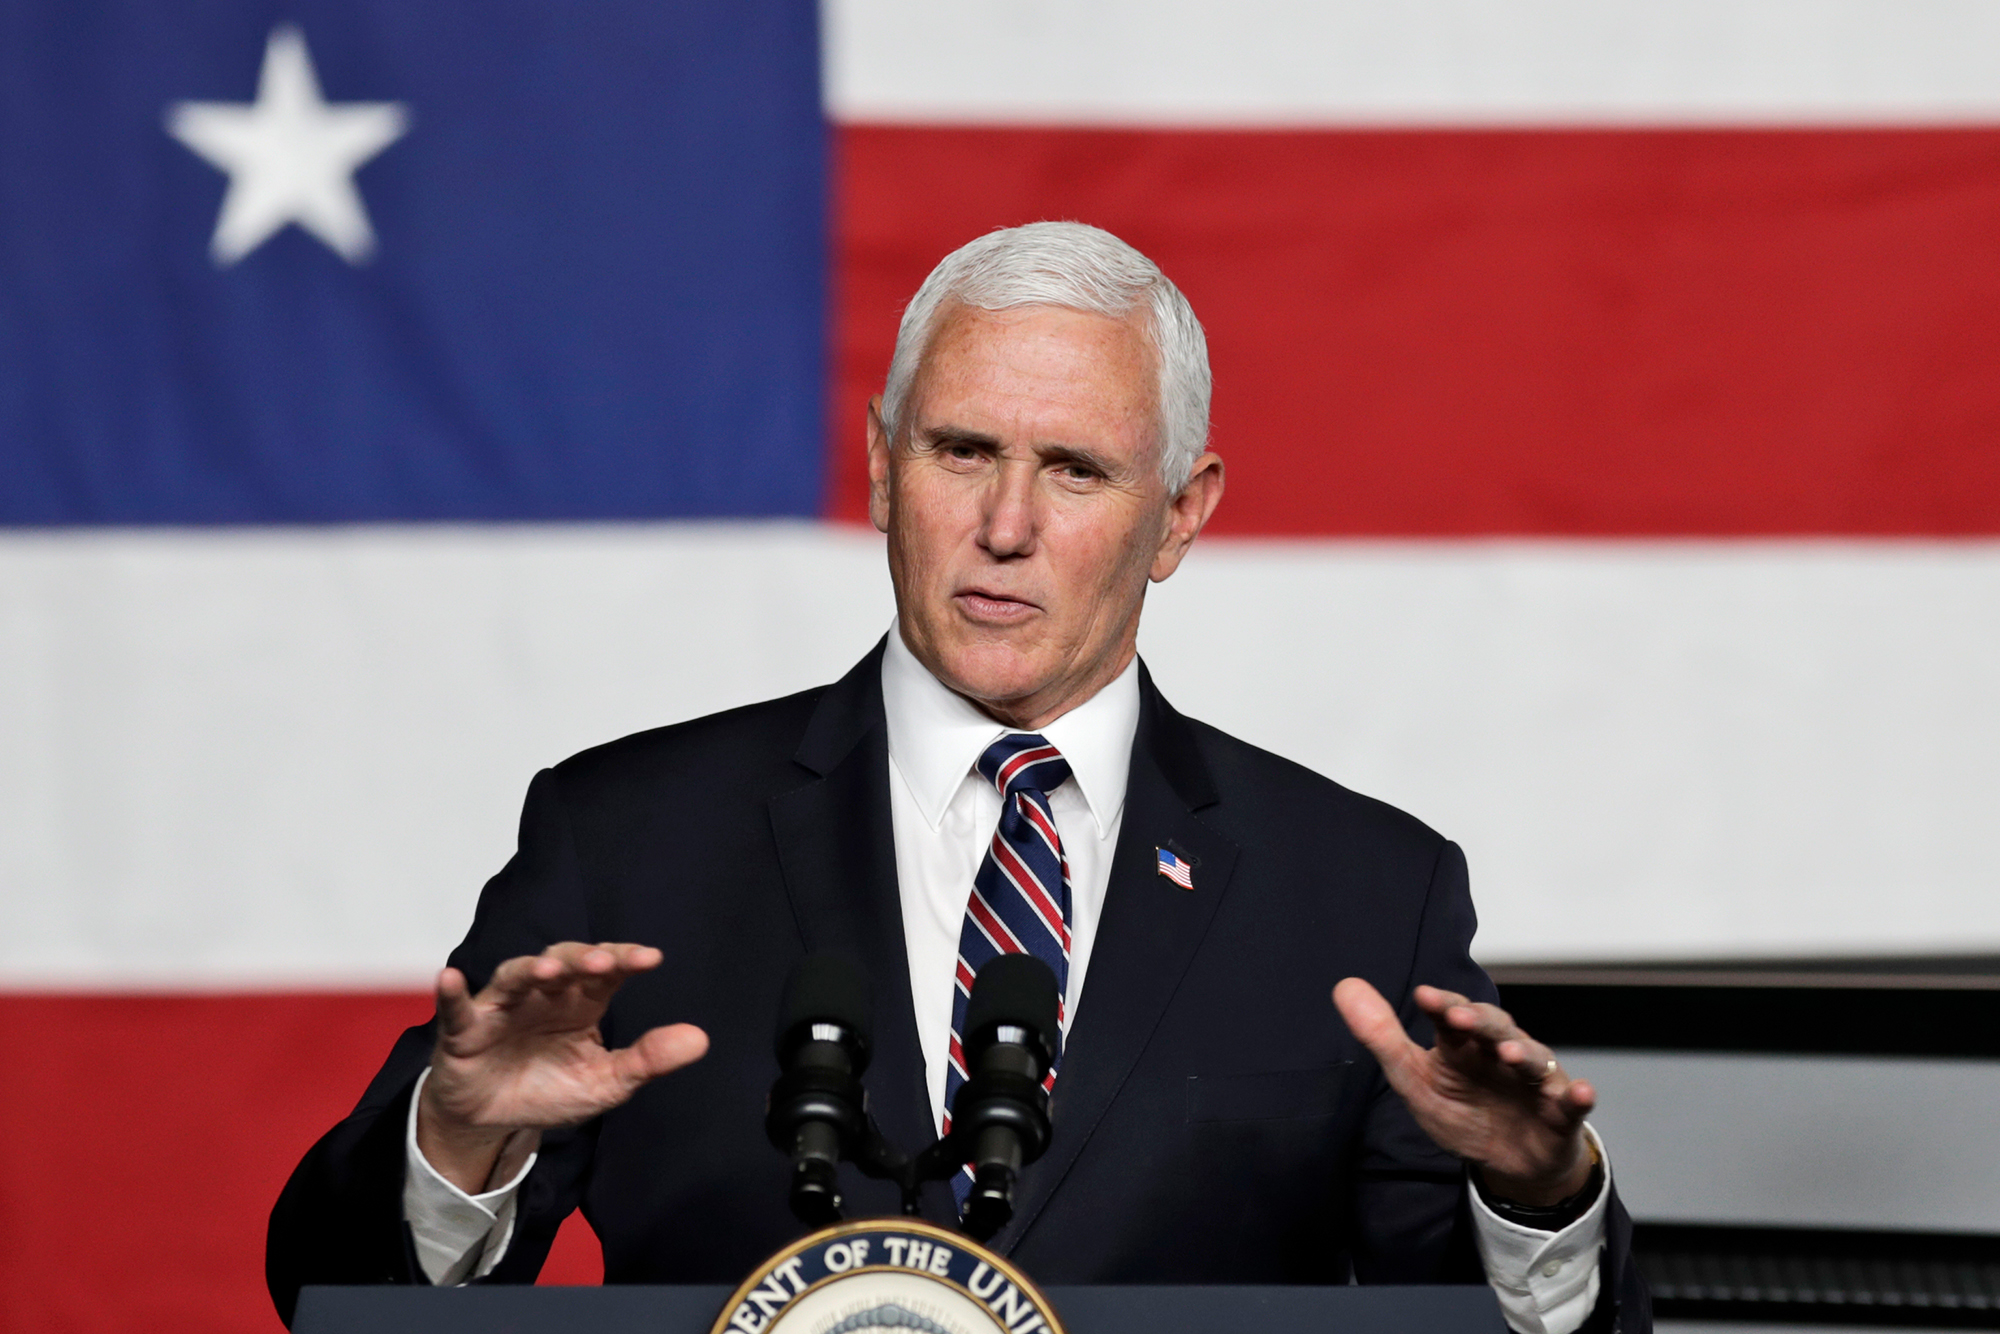 Vice President Mike Pence at Lordstown Motors Corporation, Thursday, June 25, 2020, in Lordstown, Ohio.